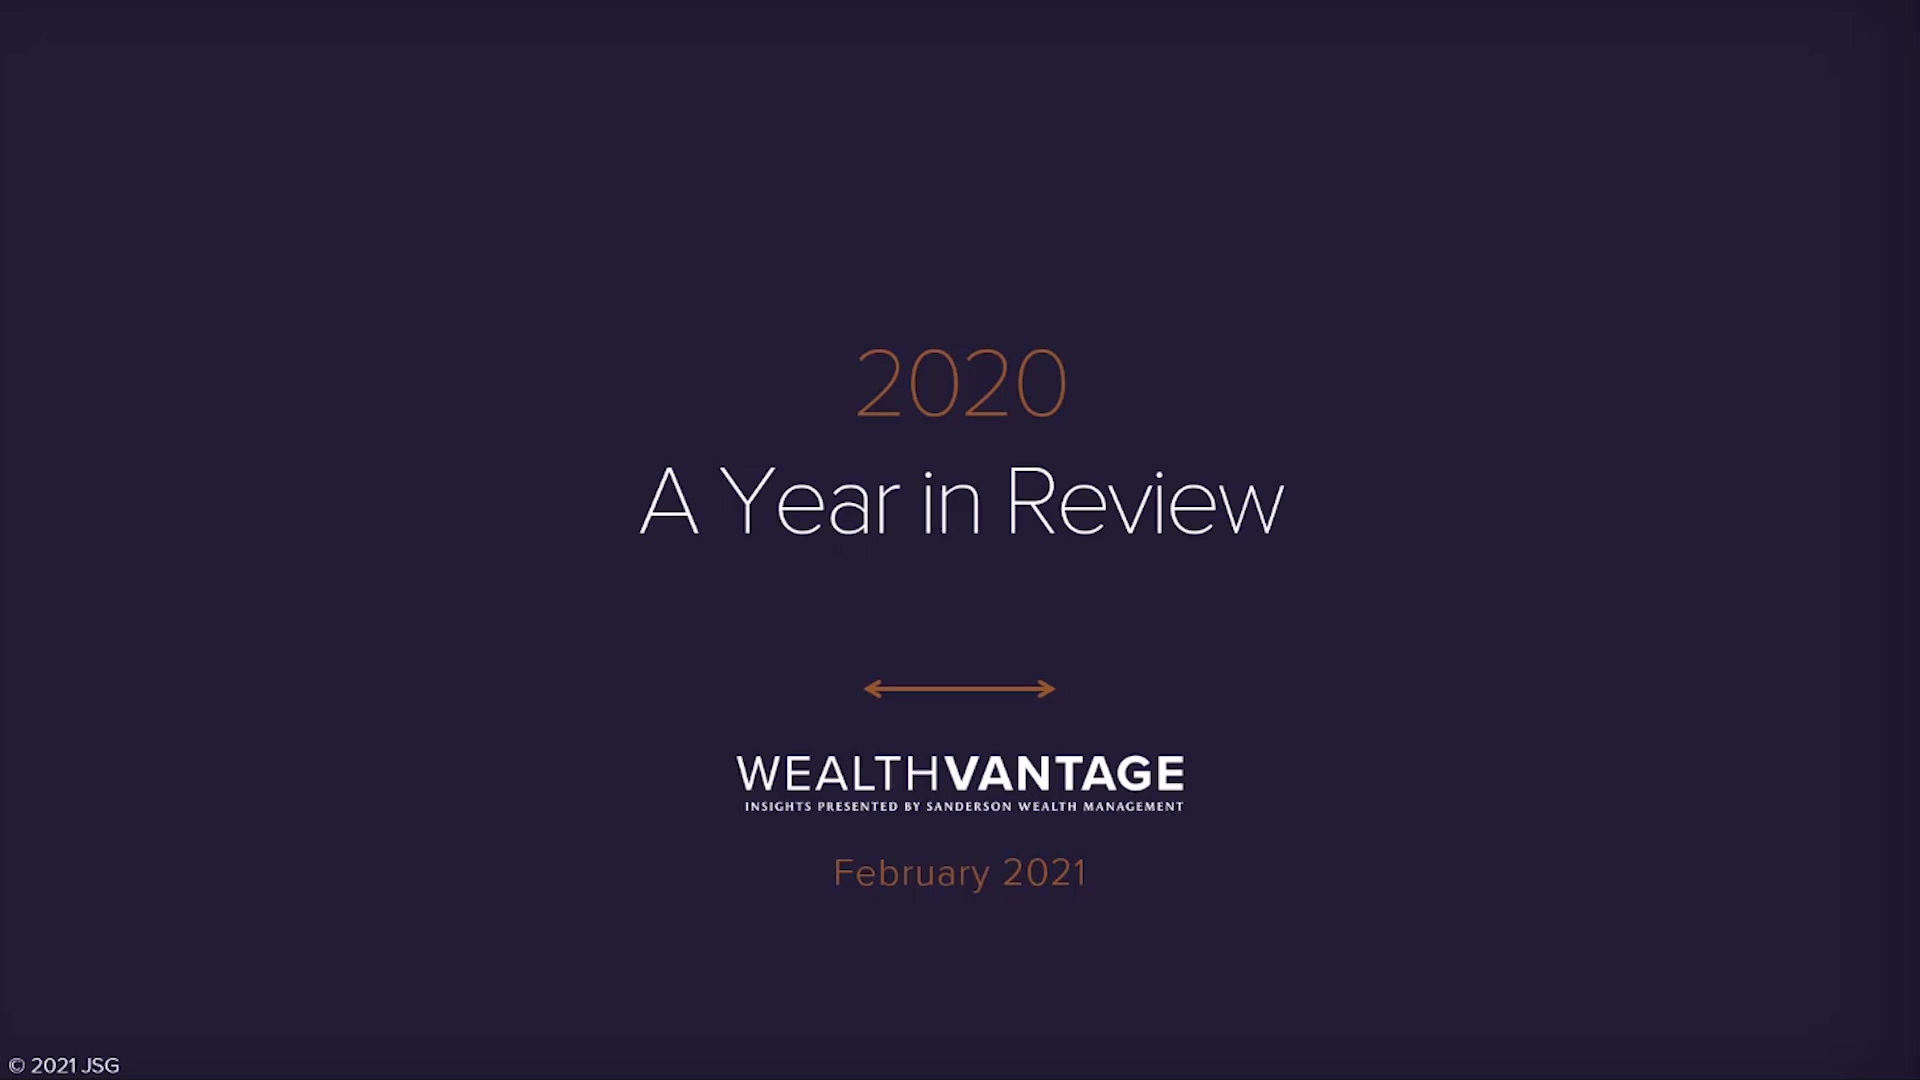 2020 A Year in Review